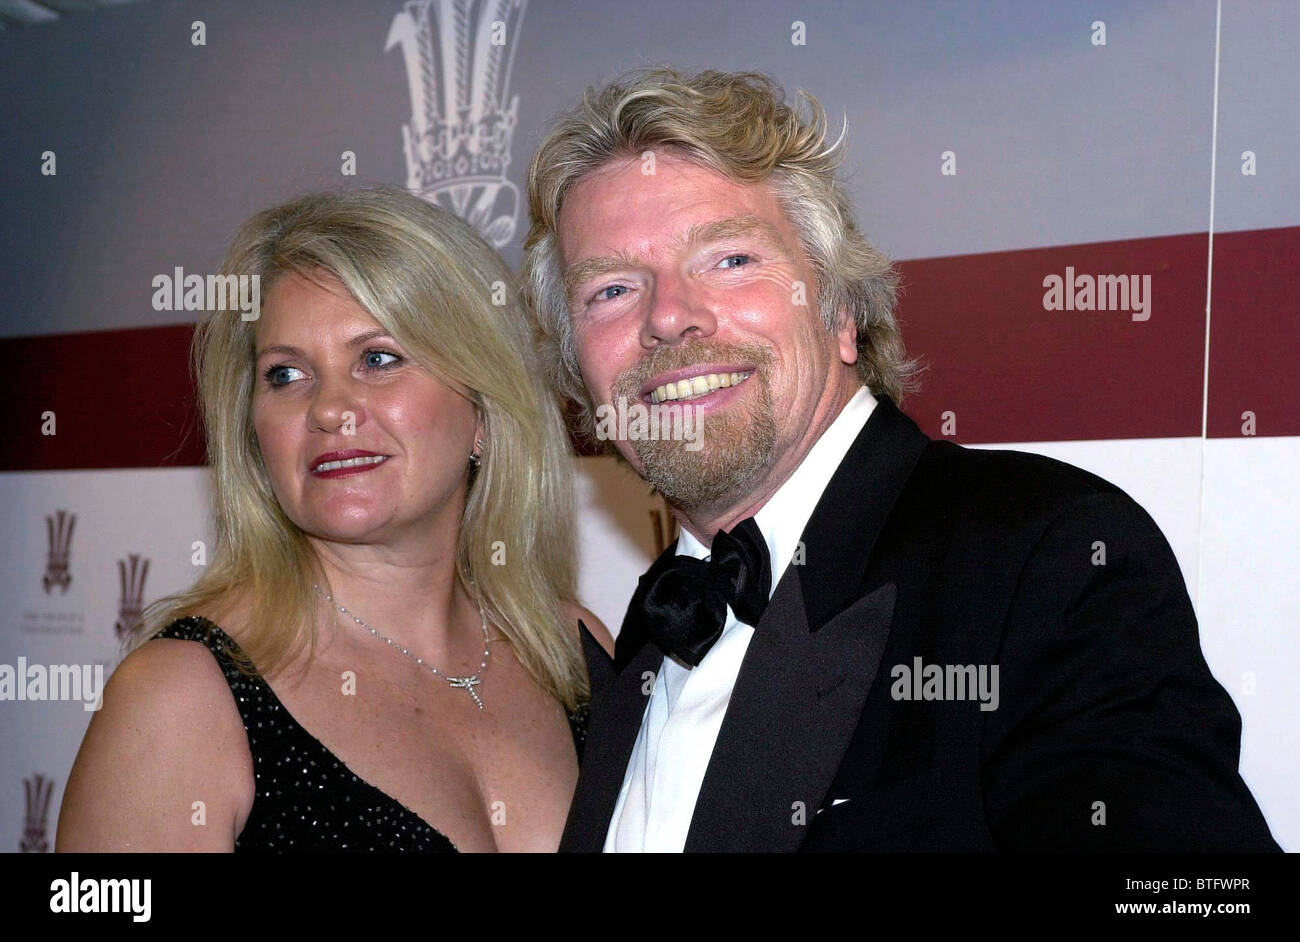 SIR RICHARD BRANSON AND HIS WIFE JOAN, LADY BRANSON, AT A ...